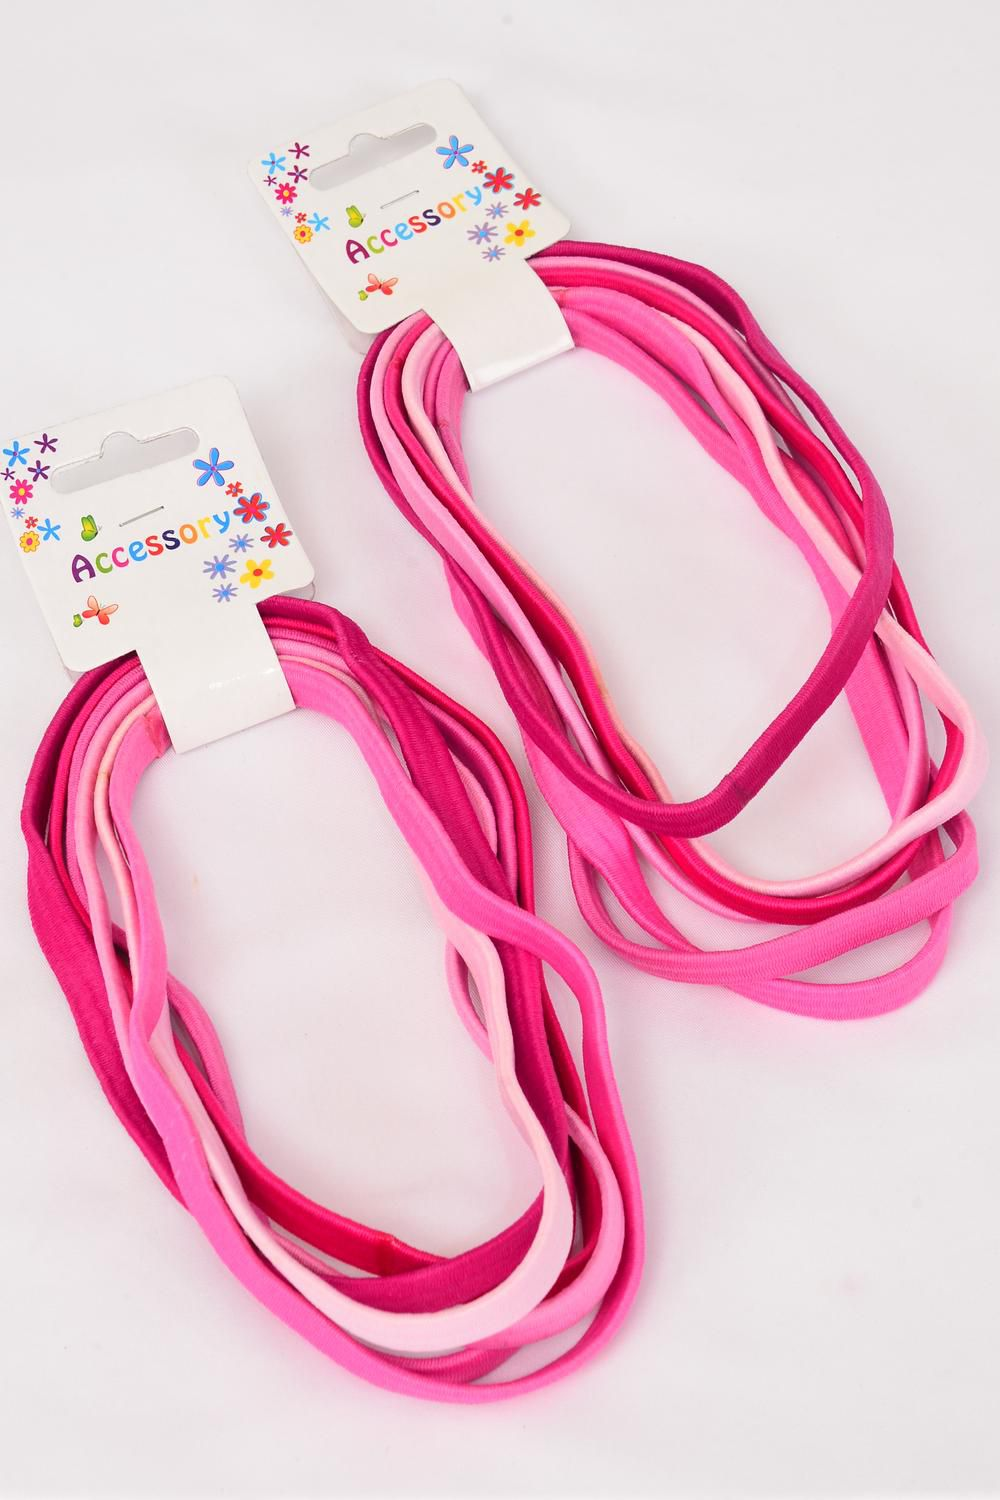 "Elastic Headband Wide Pink Mix 36 pcs /DZ **Pink Mix**  NO METAL, Size-15""x 3/8"" Wide,Pr Color Mix,Hang Tag & UPC Code,6 pcs per Card,12 Card=Dozen"